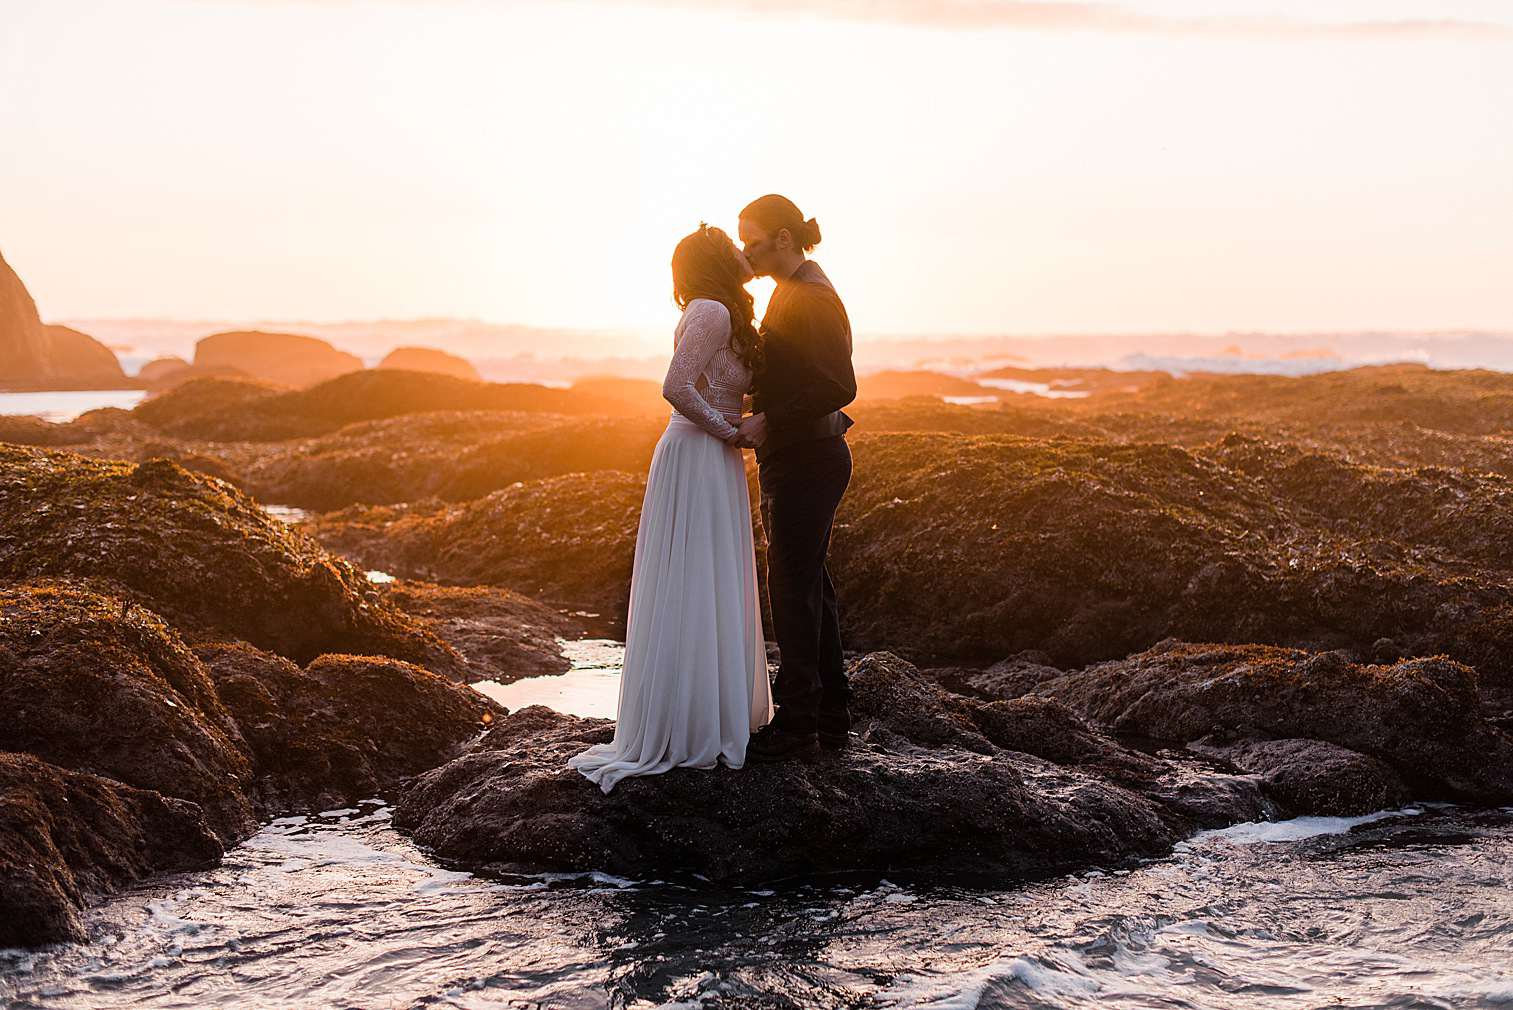 Bride and groom kissing at sunset on Shi Shi beach for their elopement. Image by Forthright Photo